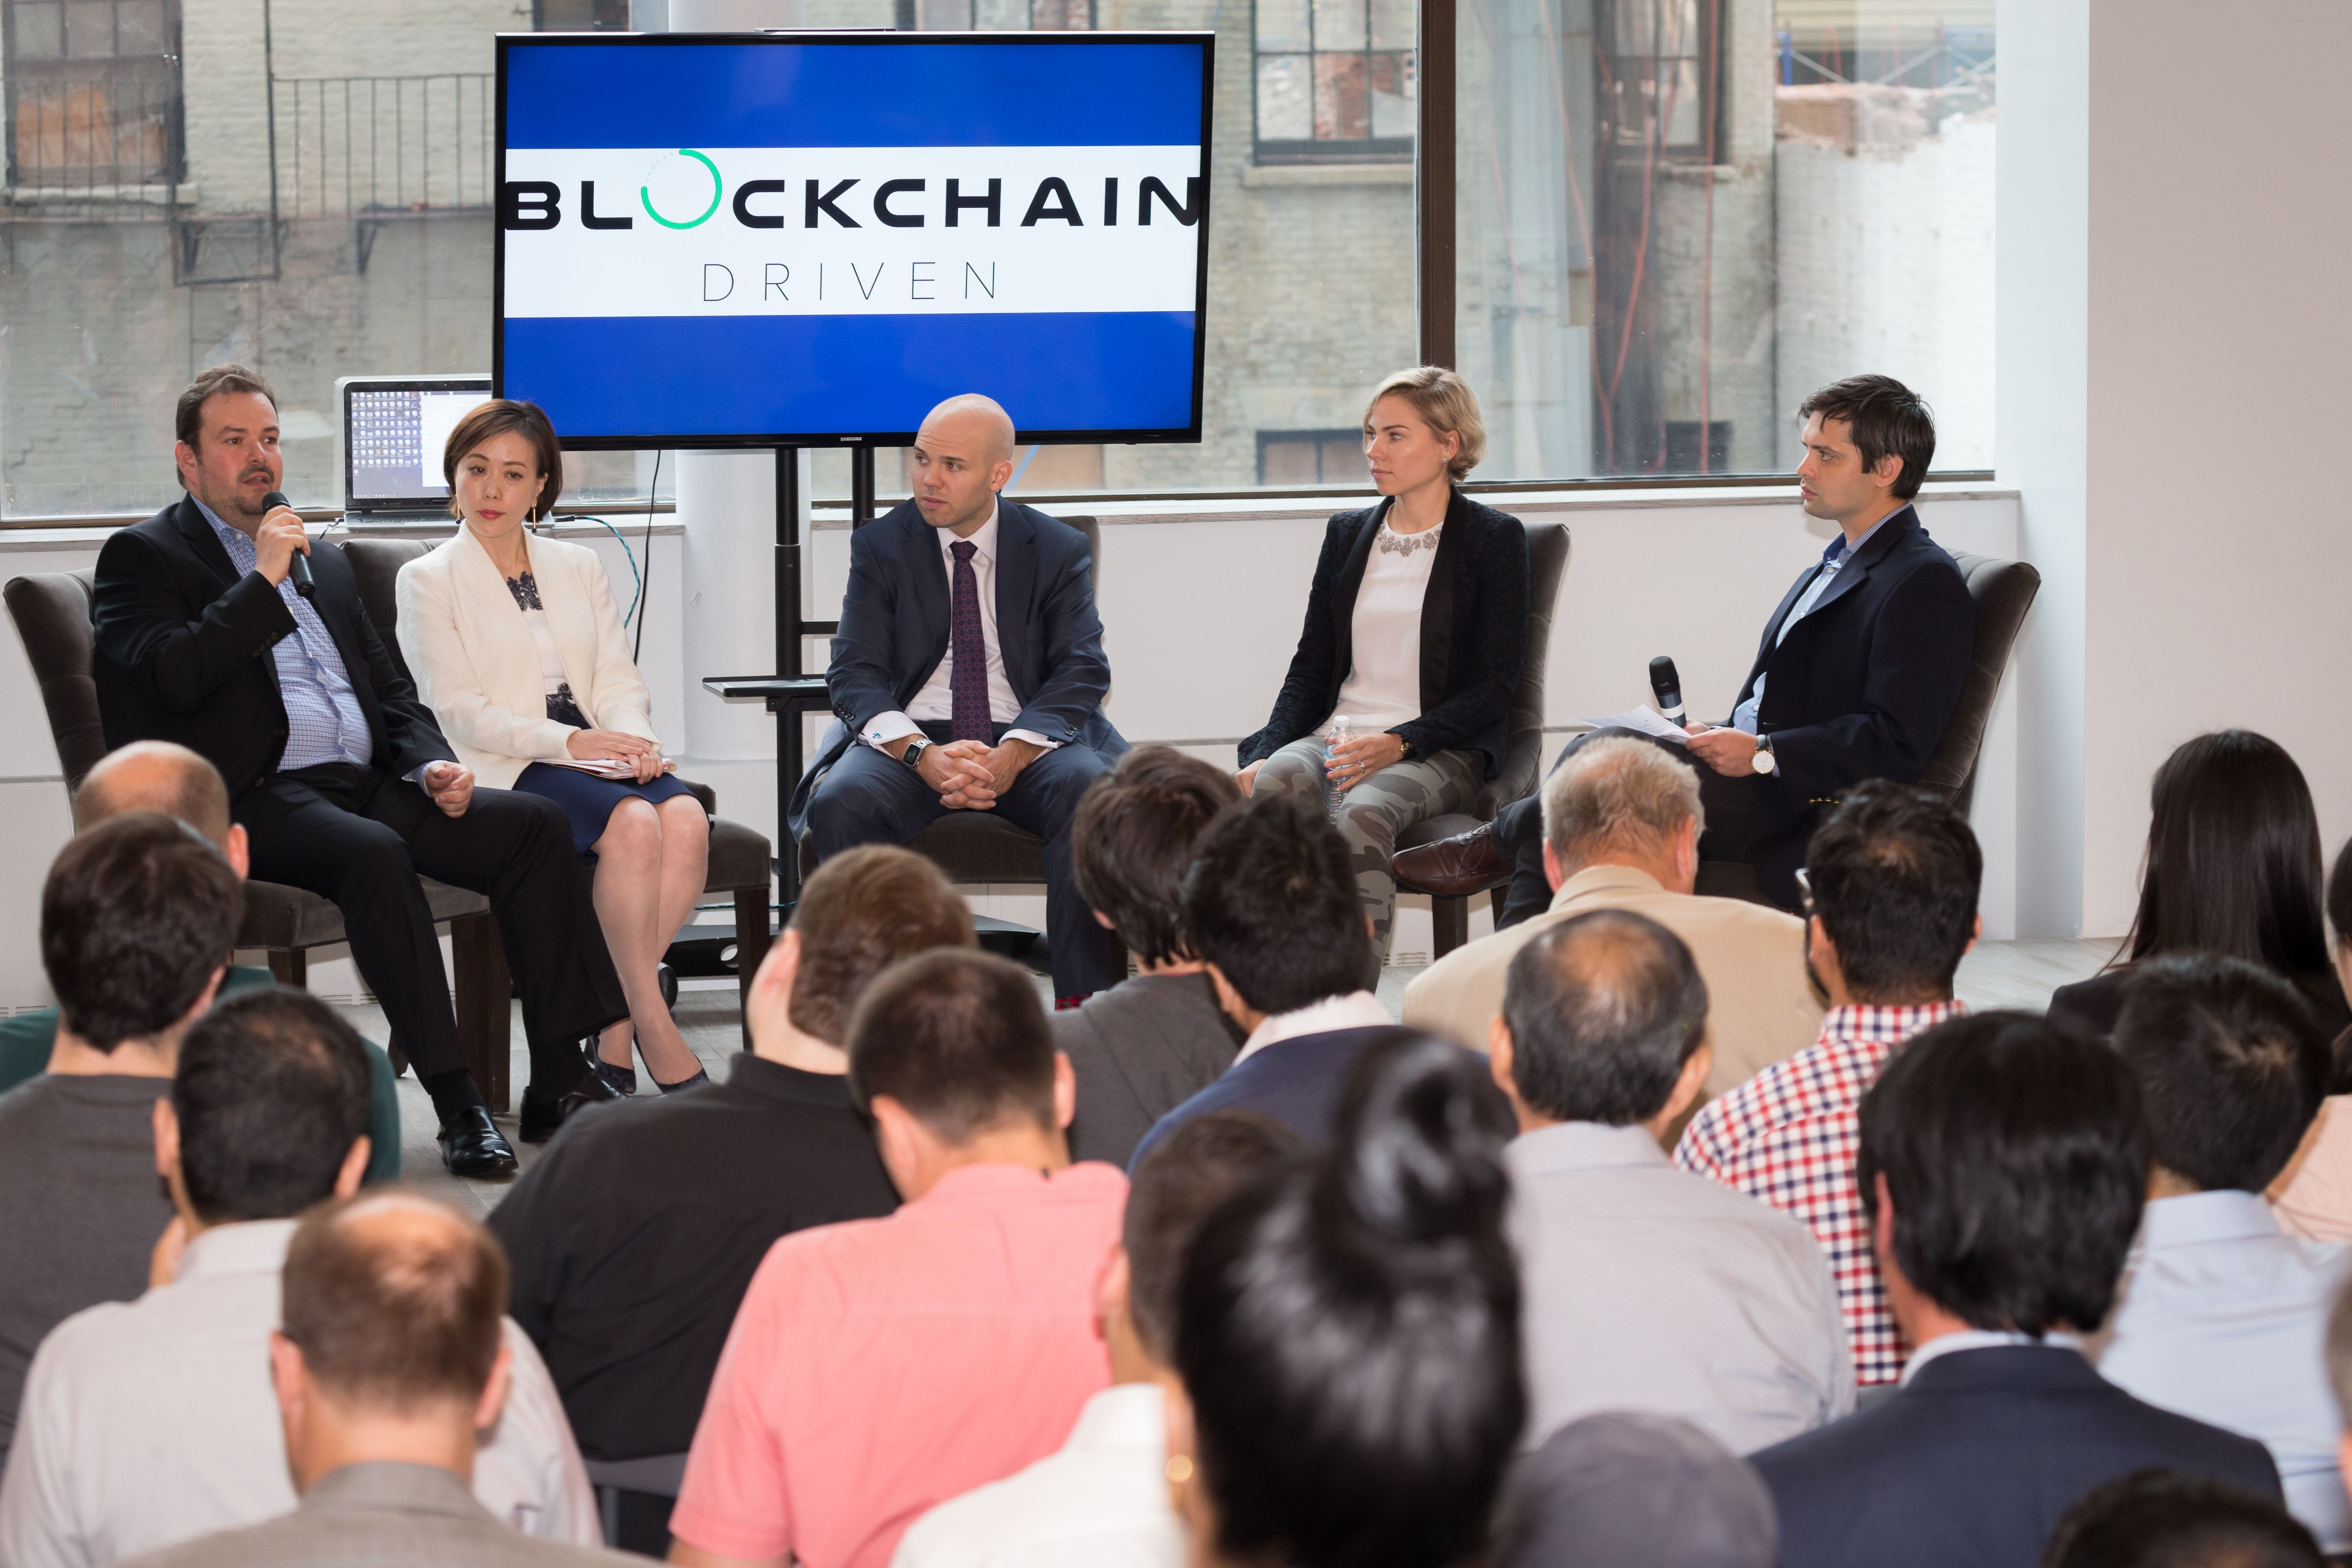 Blockchain NYC .org - Latest Trends & Events (5900+ members)